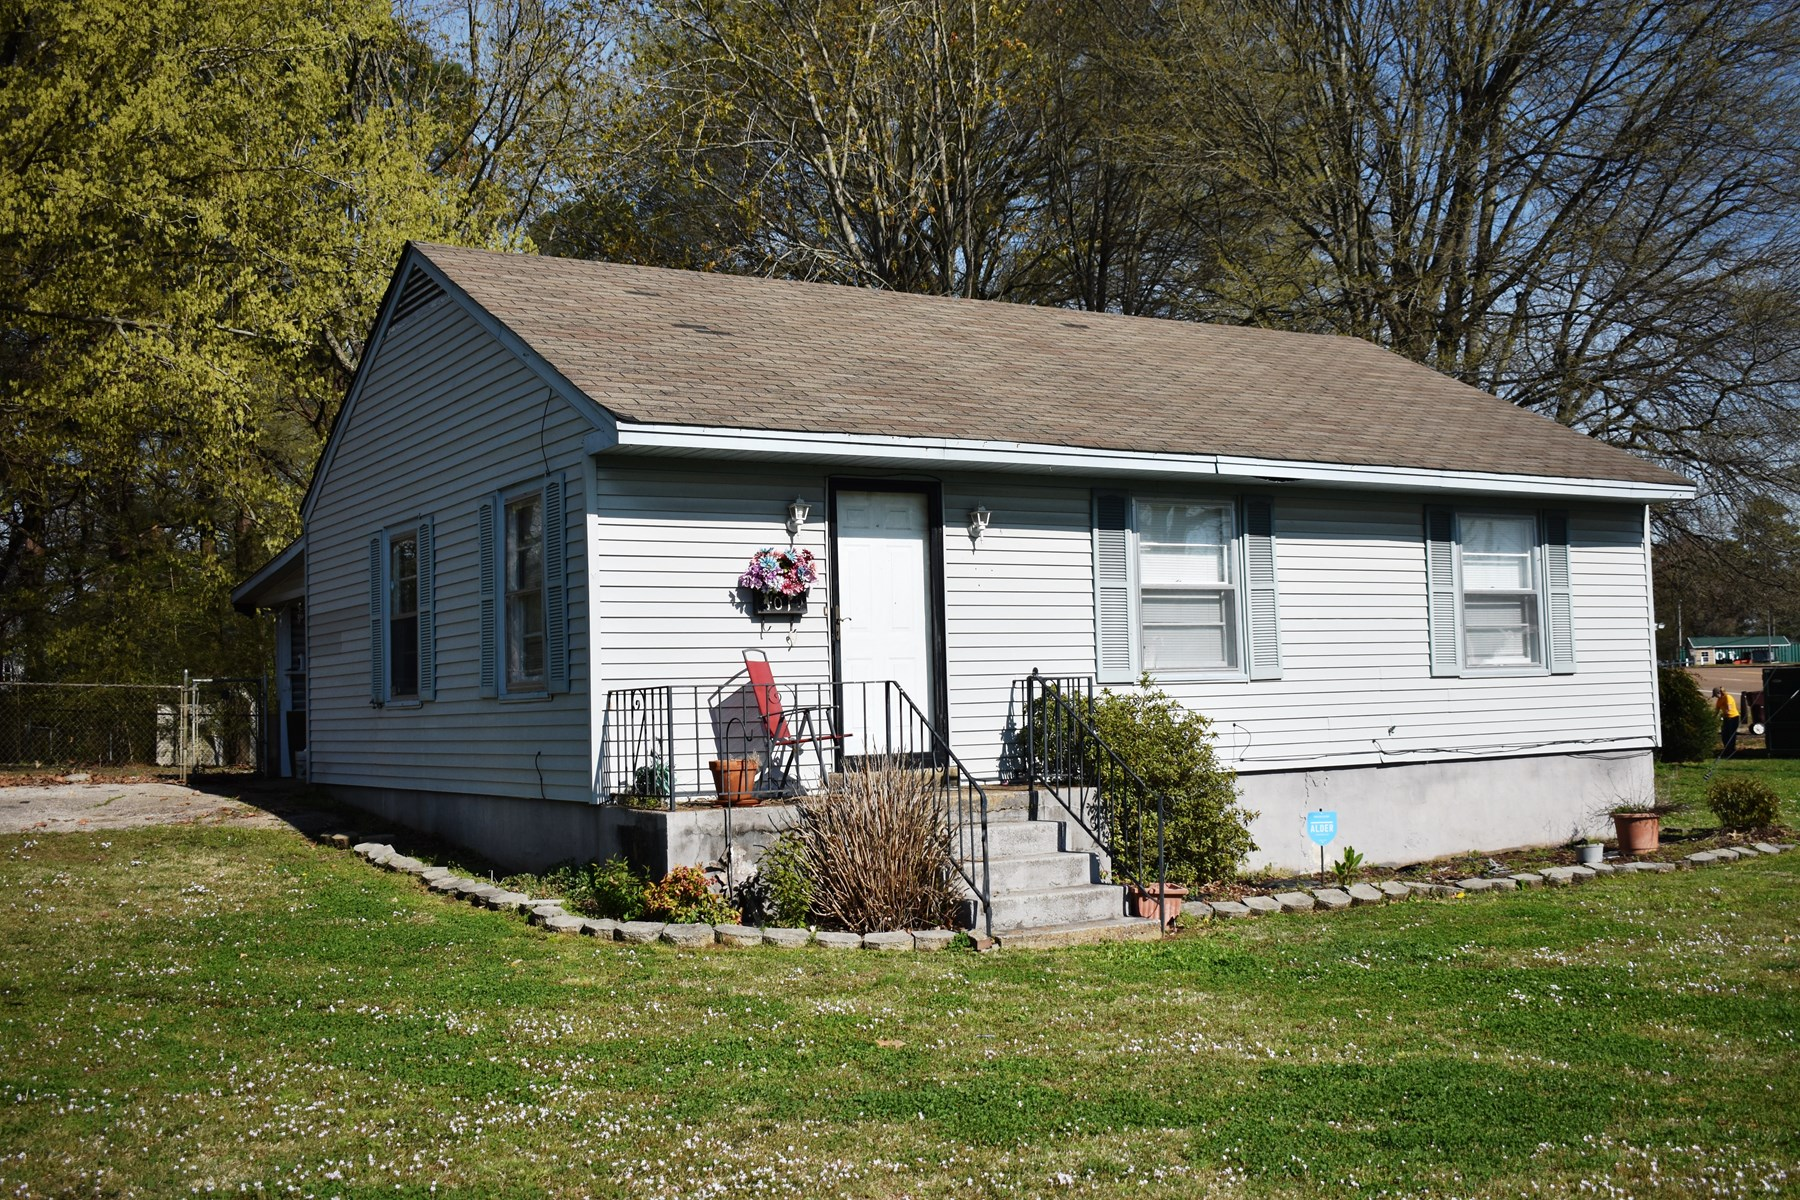 Smaller Home - Investment Property For Sale in Milan, TN